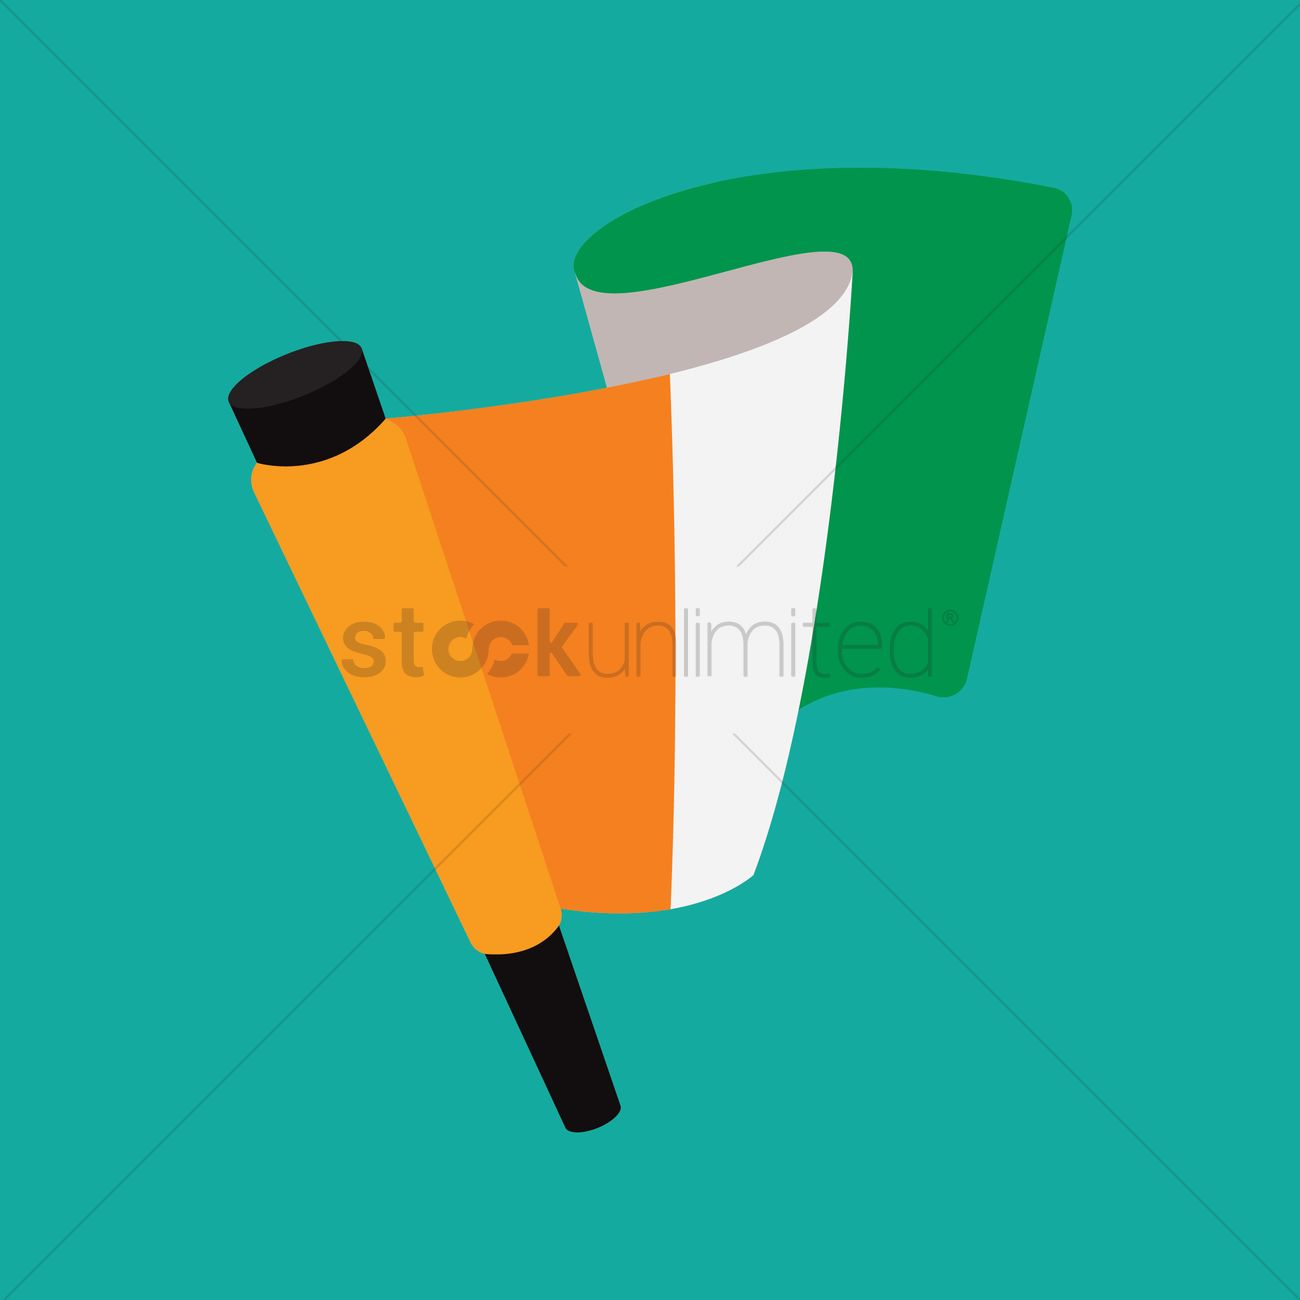 ivory coast flag vector graphic